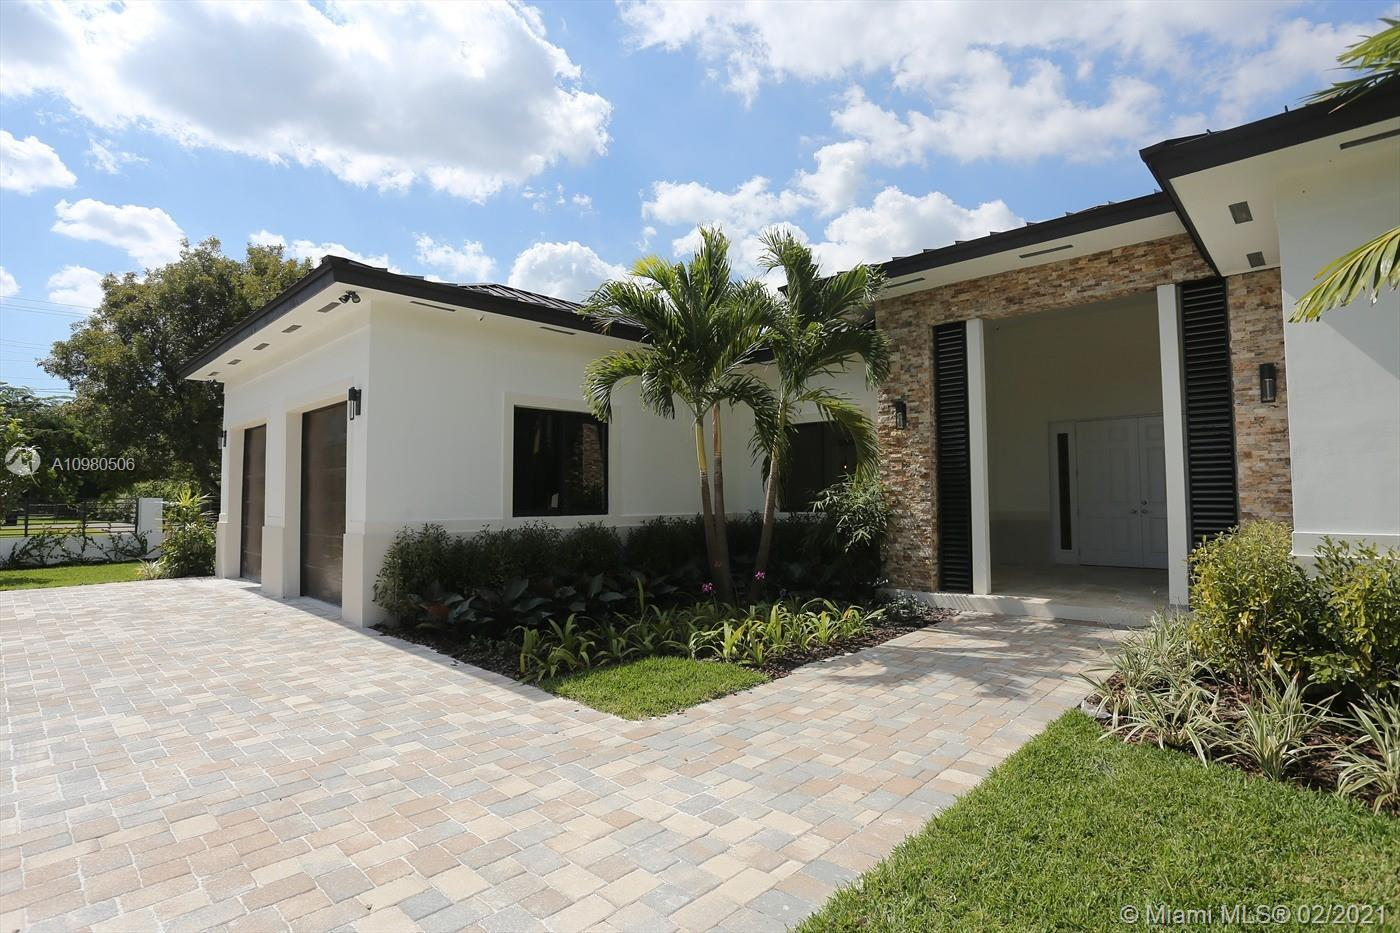 This is a DREAM FAMILY HOME, 1 Story, 5 Bedroom, 5 Bath, Open Floor Plan, High-Ceilings, Marble Floo